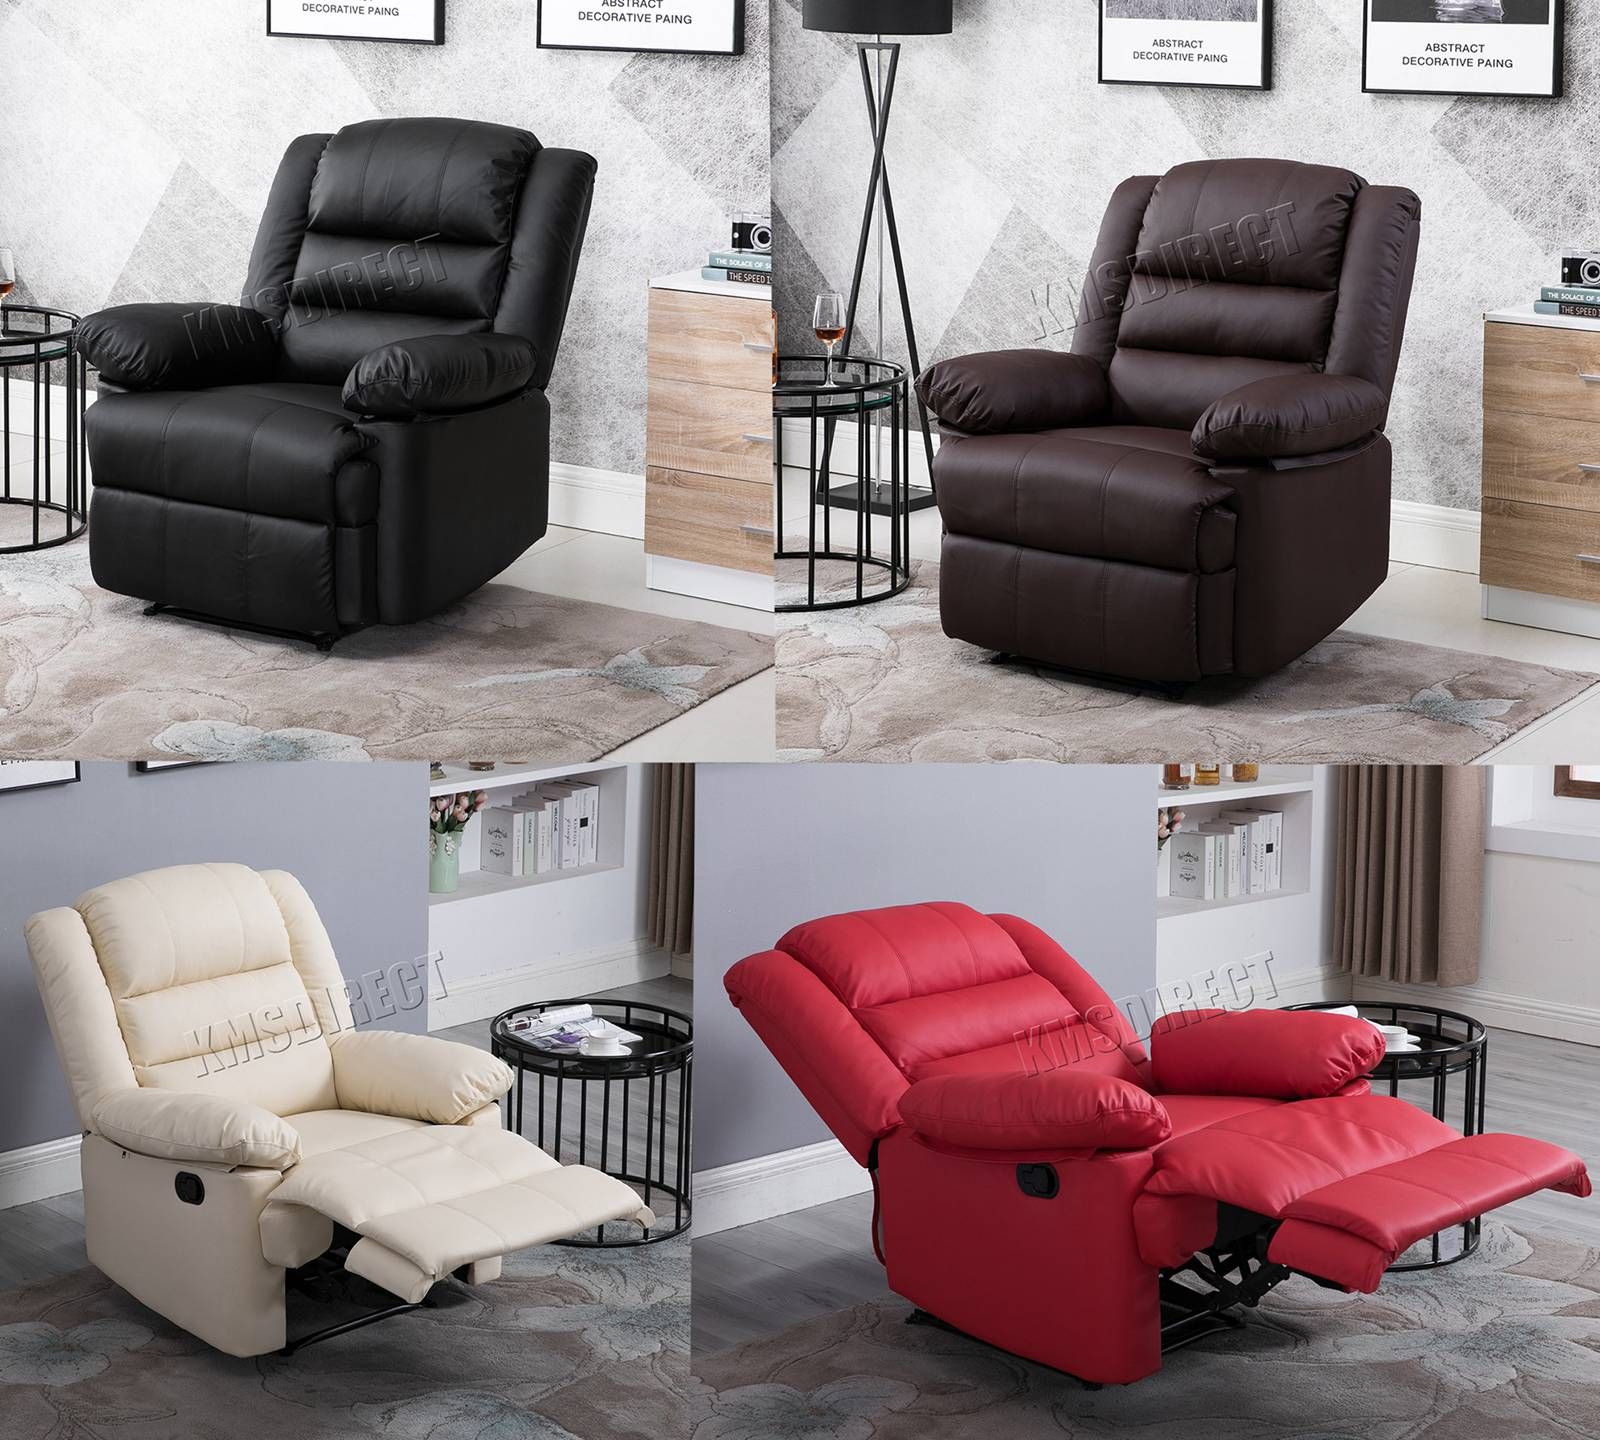 Excellent Details About Westwood Recliner Sofa Chair Armchair Luxury Seater Pu Leather Cinema Rs04 Gmtry Best Dining Table And Chair Ideas Images Gmtryco